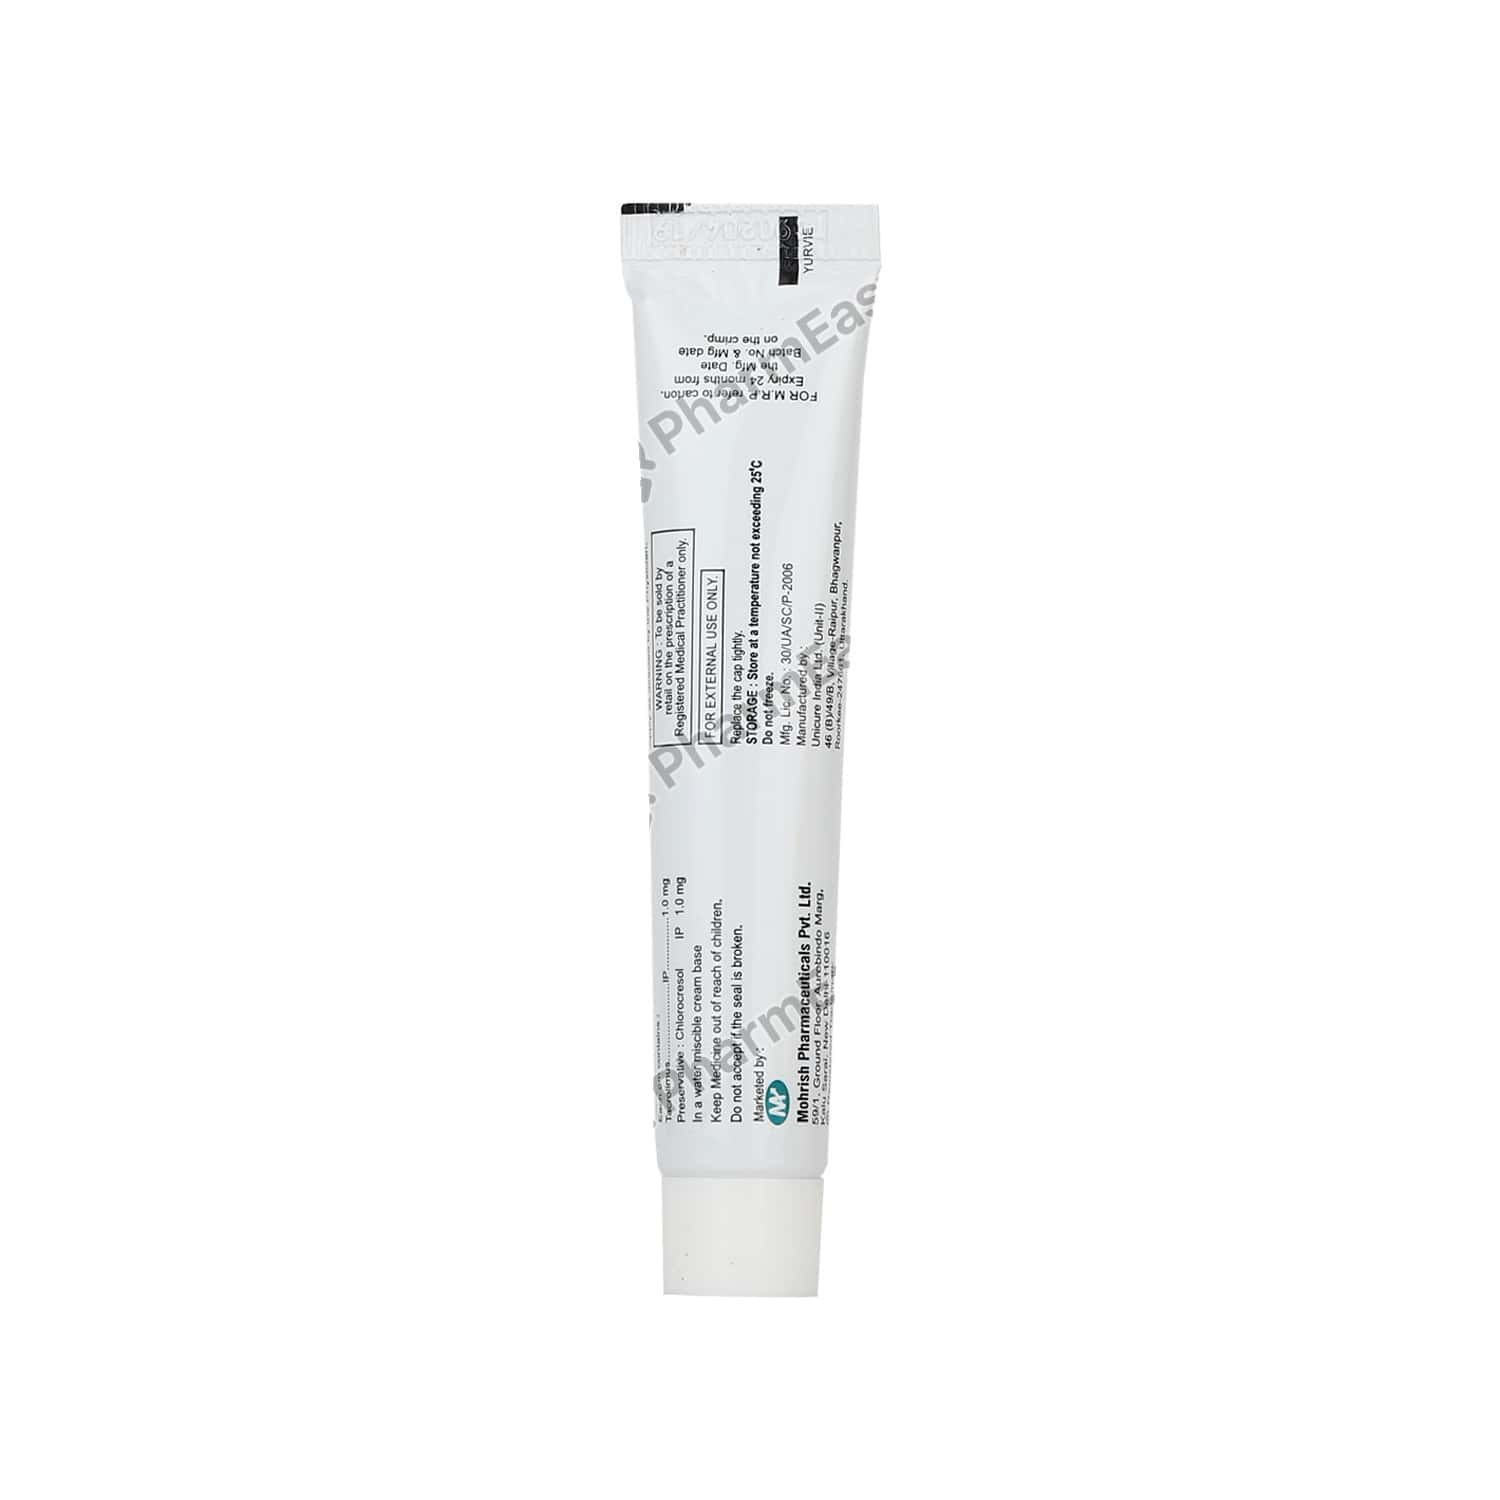 Tacvido Forte Ointment 20gm